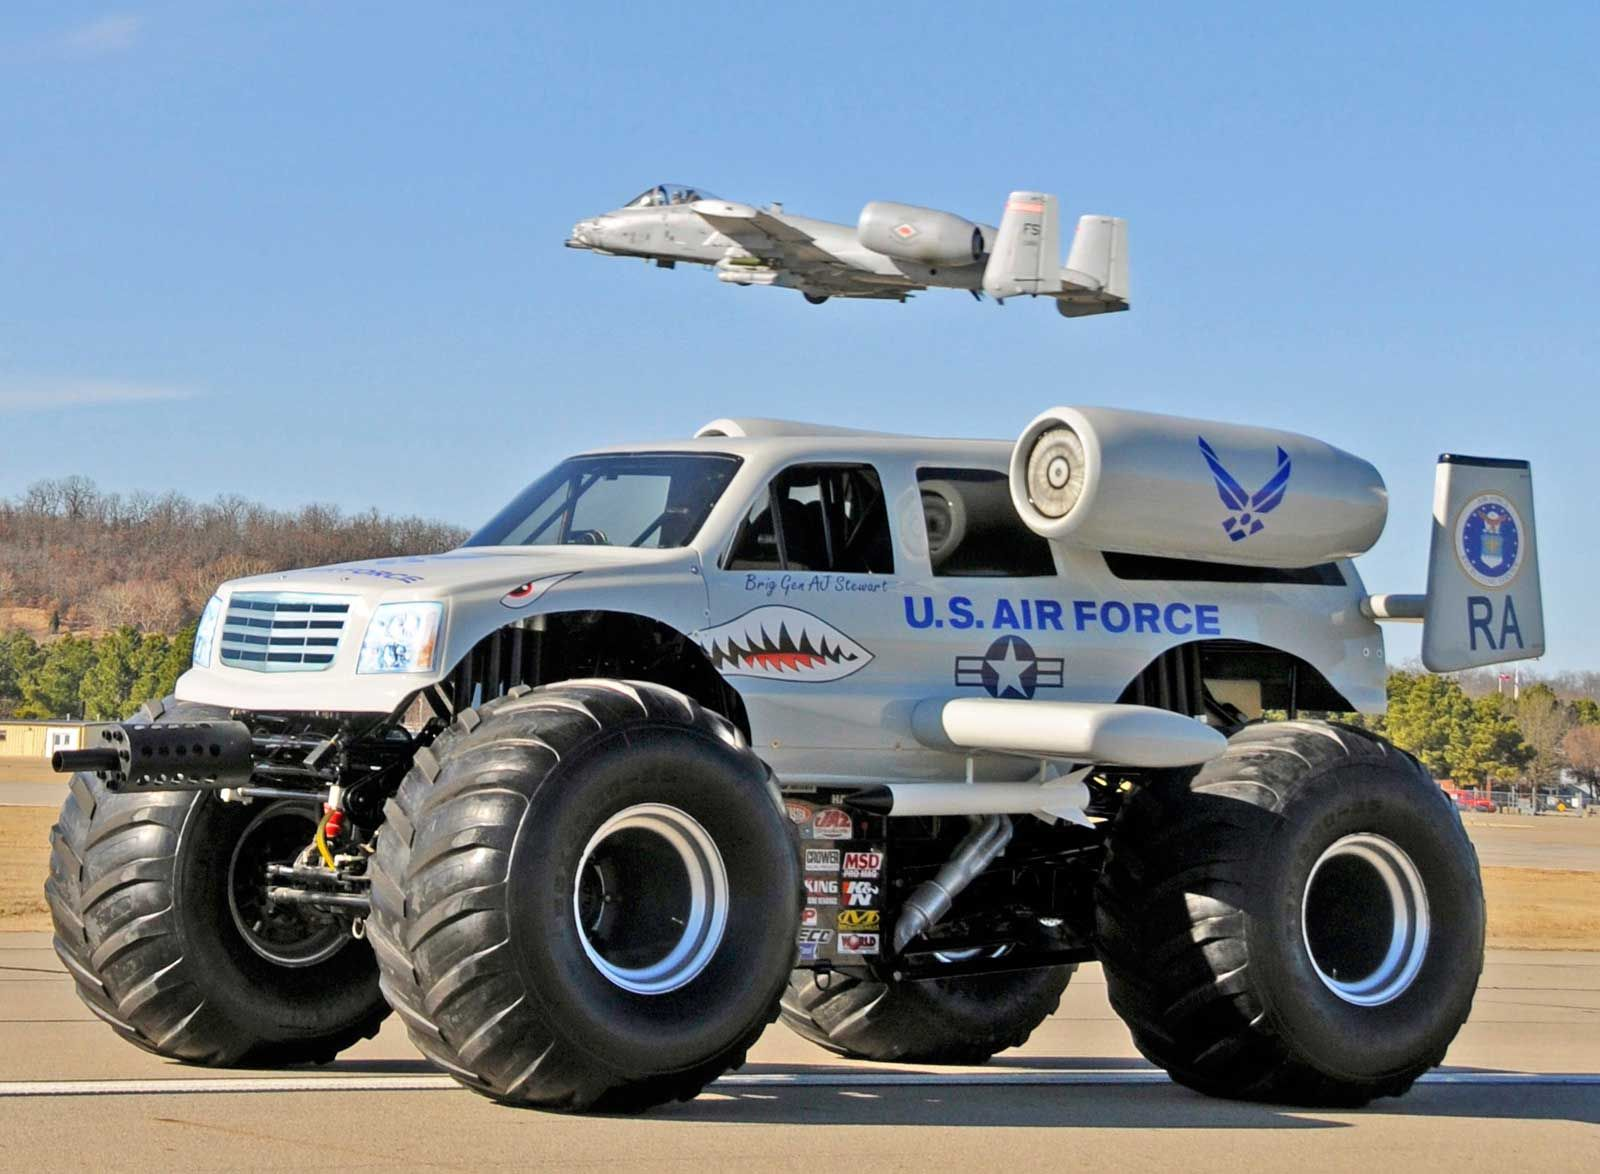 The Monster Truck Used In This Film Was Designed And Built For